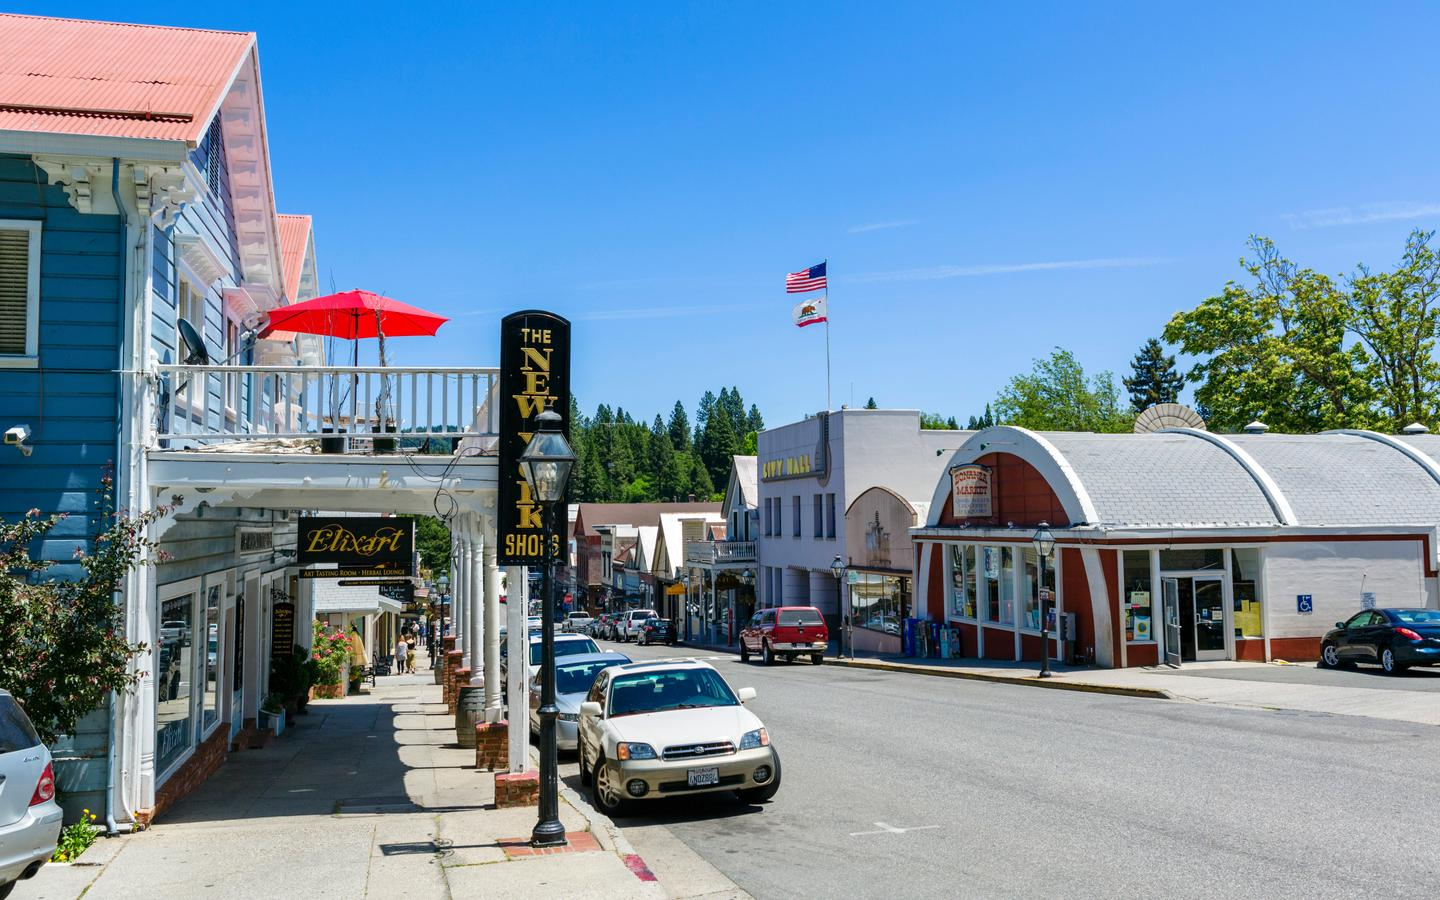 Hotels in Nevada City